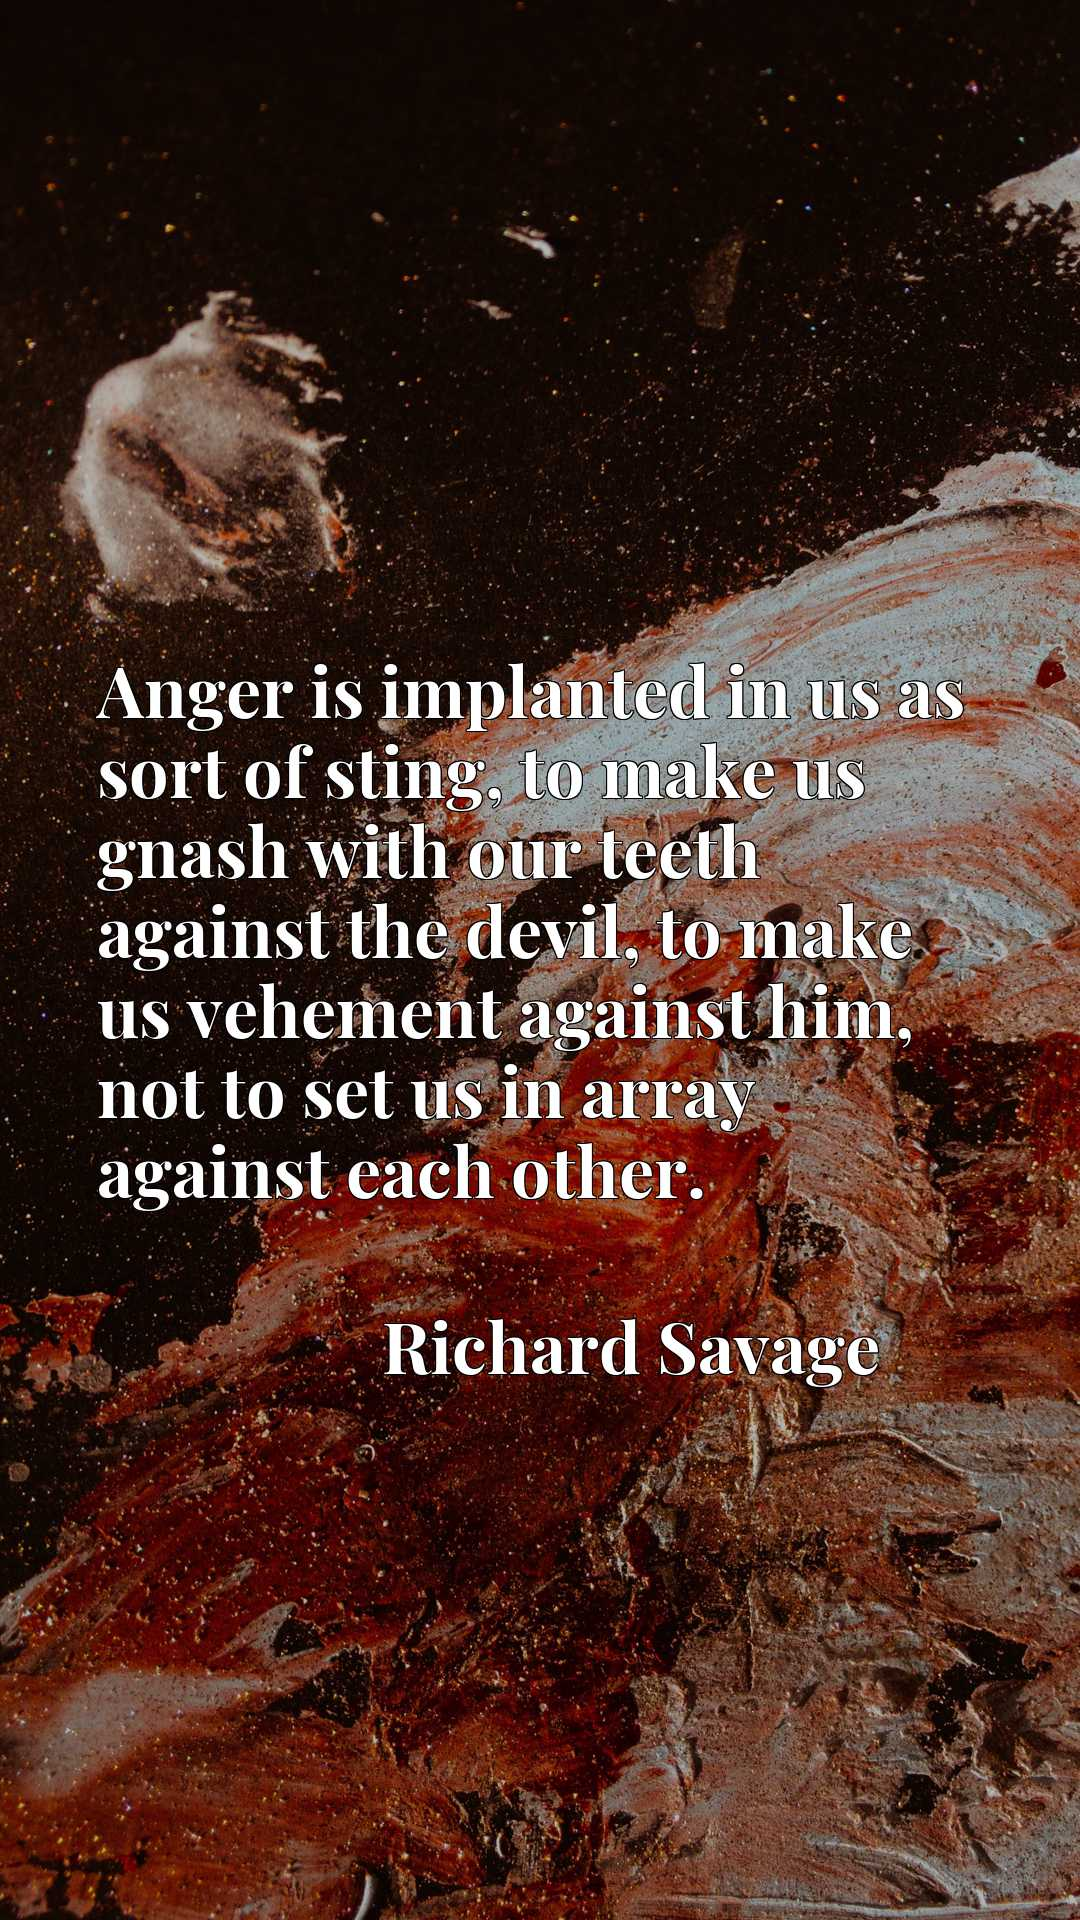 Anger is implanted in us as sort of sting, to make us gnash with our teeth against the devil, to make us vehement against him, not to set us in array against each other.